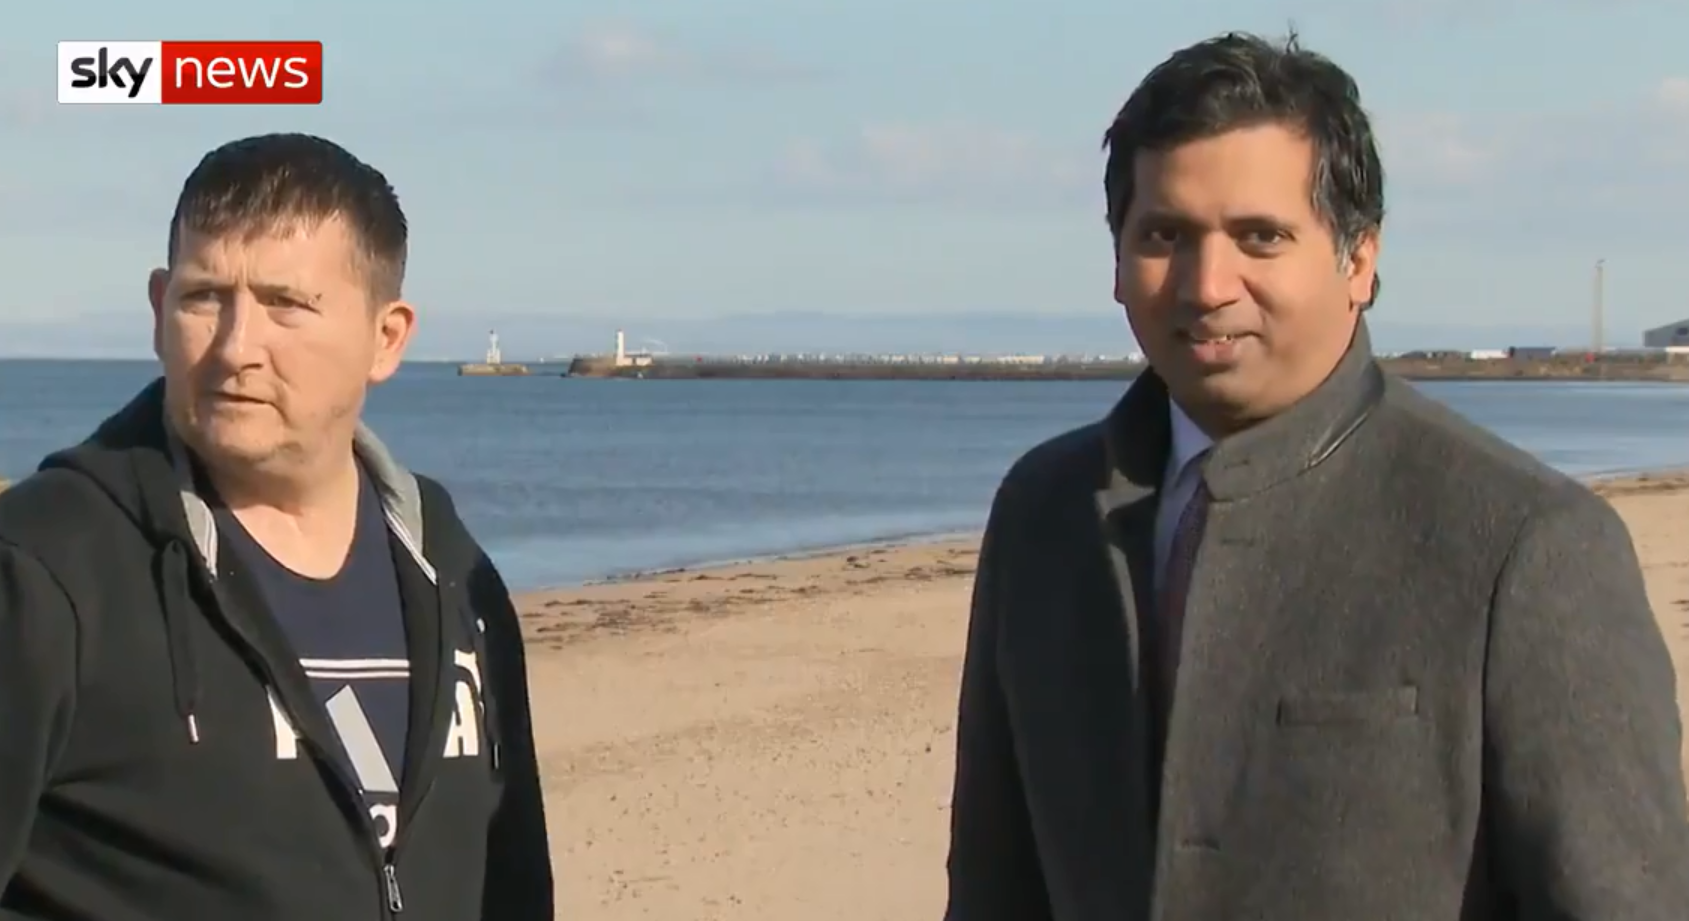 Faisal Islam encountered a curious passer-by in Ayr (Sky News / Twitter)